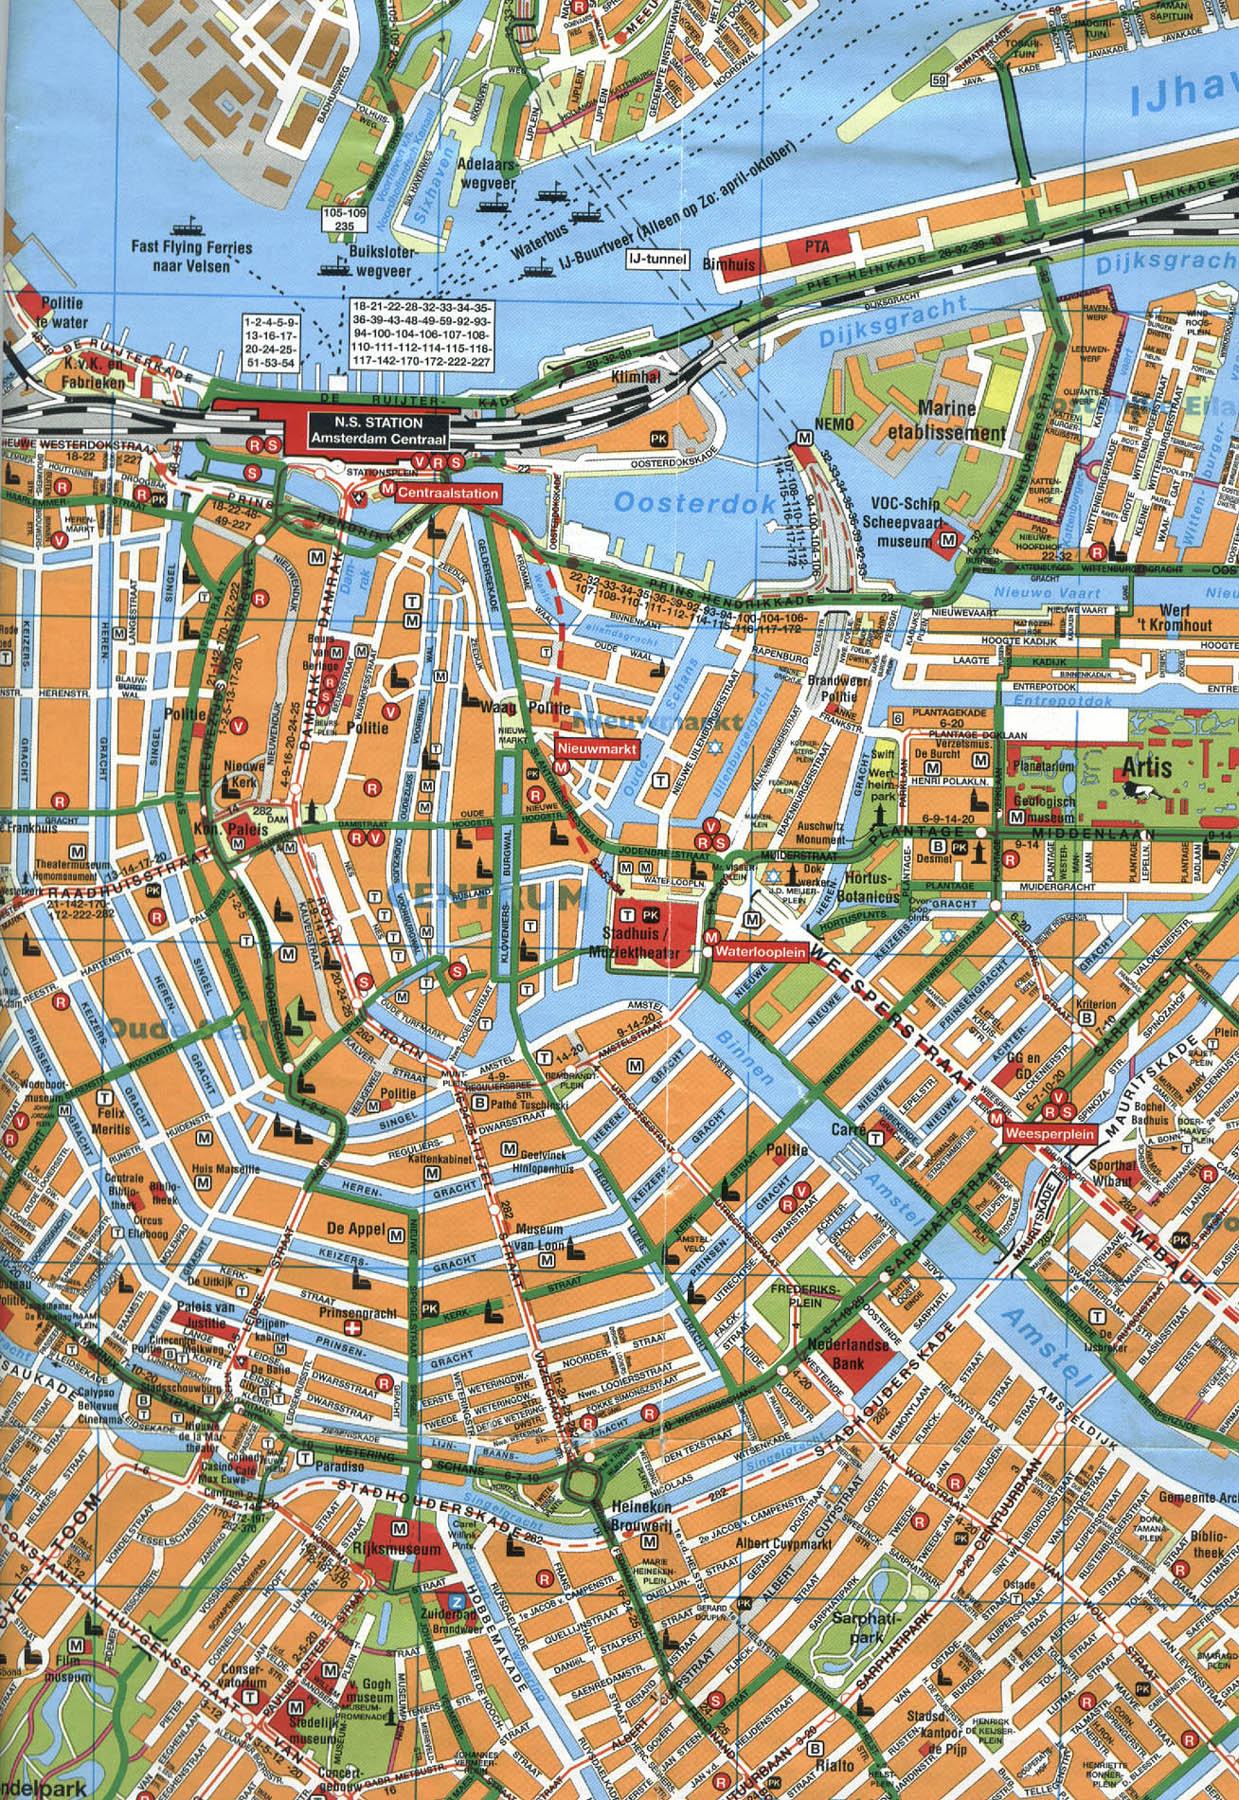 Cheap Tickets Sydney Amsterdam Cheapest Hotel Boathouse Amsterdam